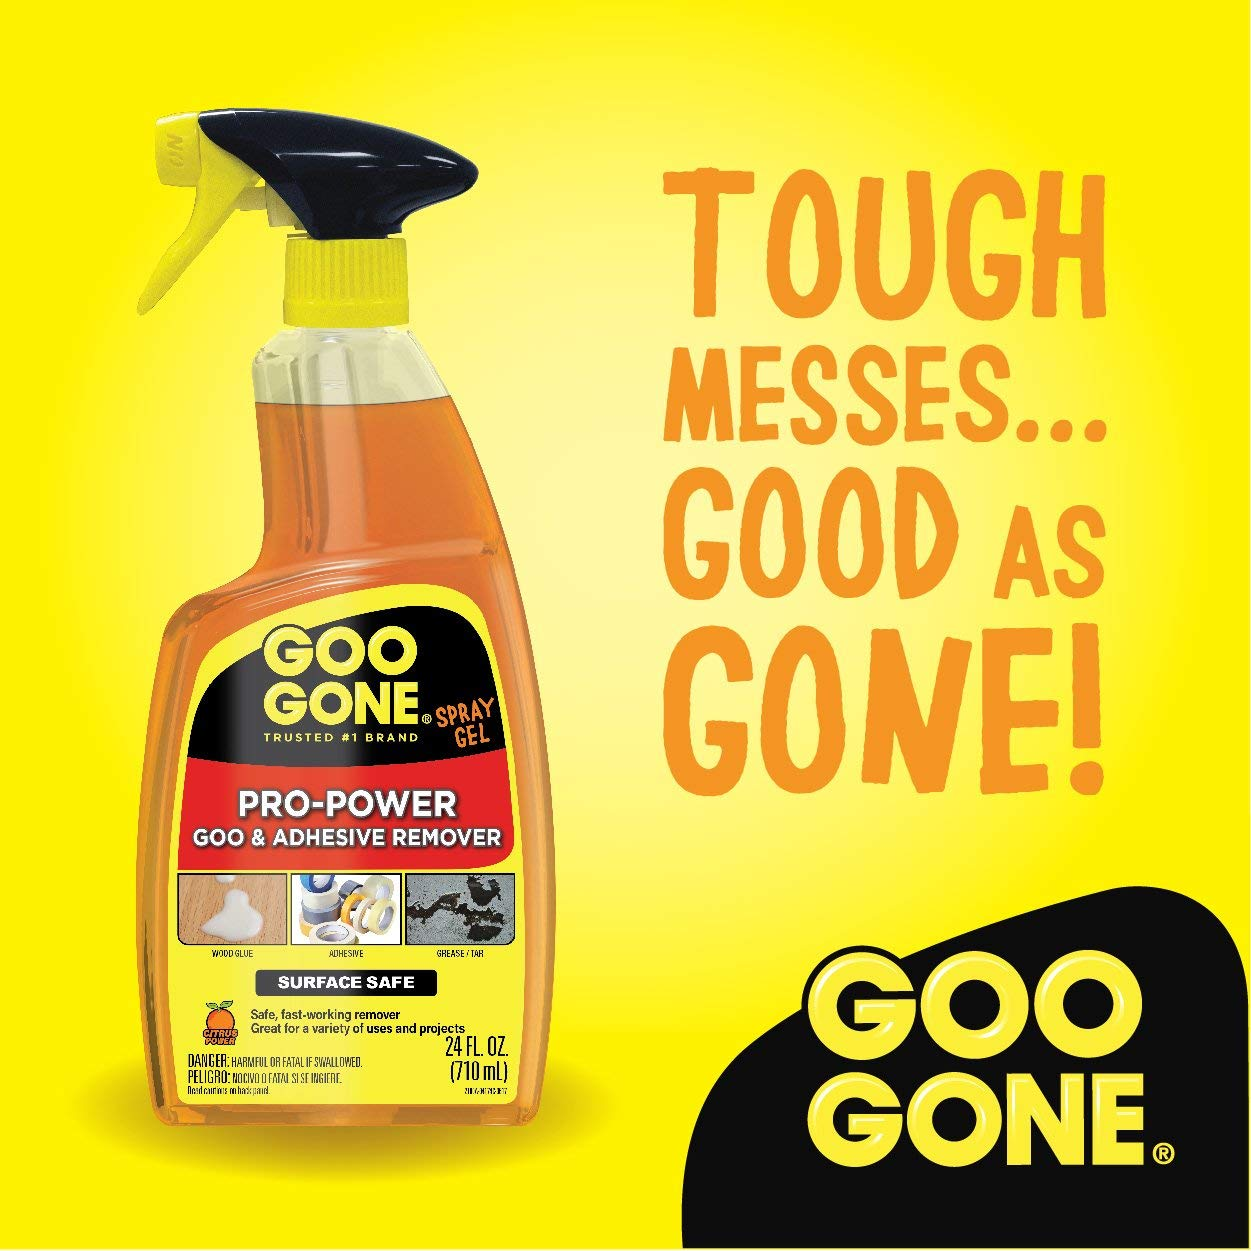 Goo Gone IUGYH Pro-Power Spray Gel - 24 Ounce - Surface Safe, Great Cleaner, No Harsh Odors, Removes Stickers, Can Be Used On Tools 2 Pack by Goo Gone (Image #4)